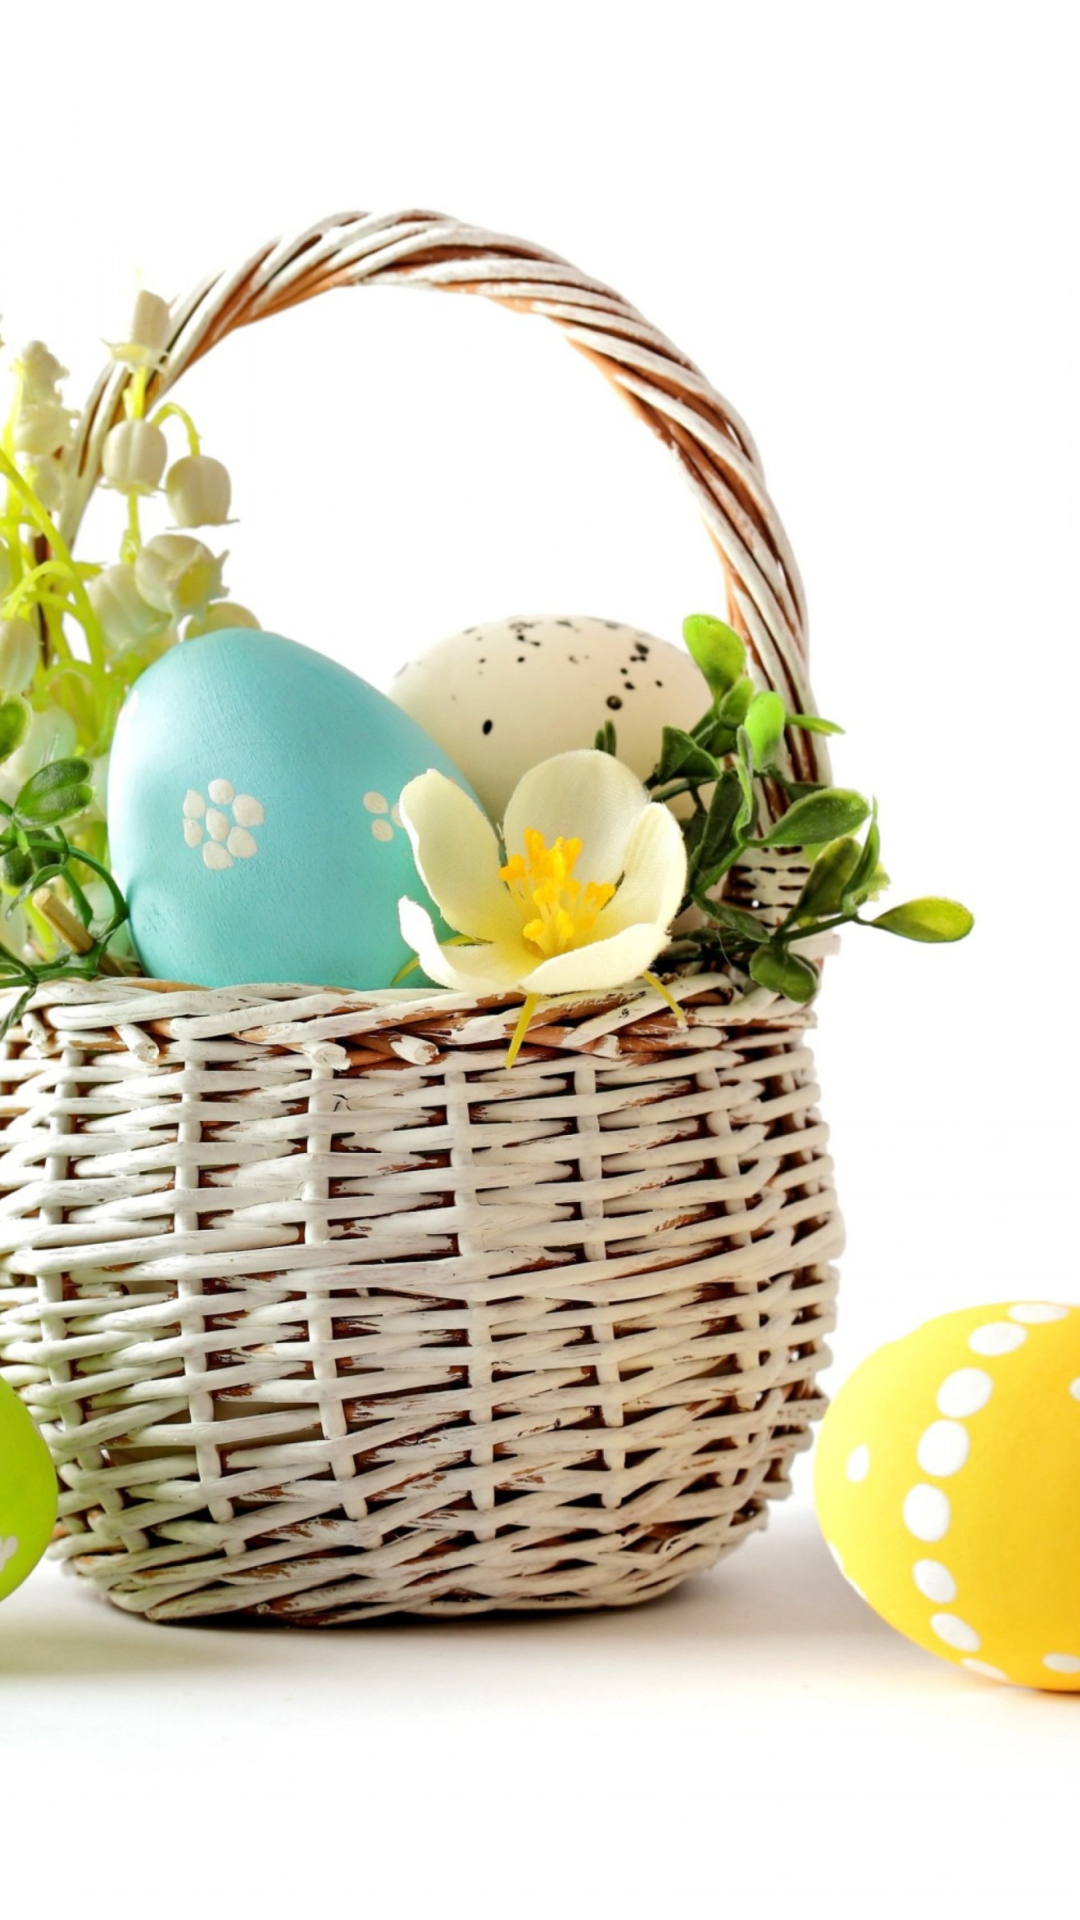 Easter Basket wallpaper 1080x1920